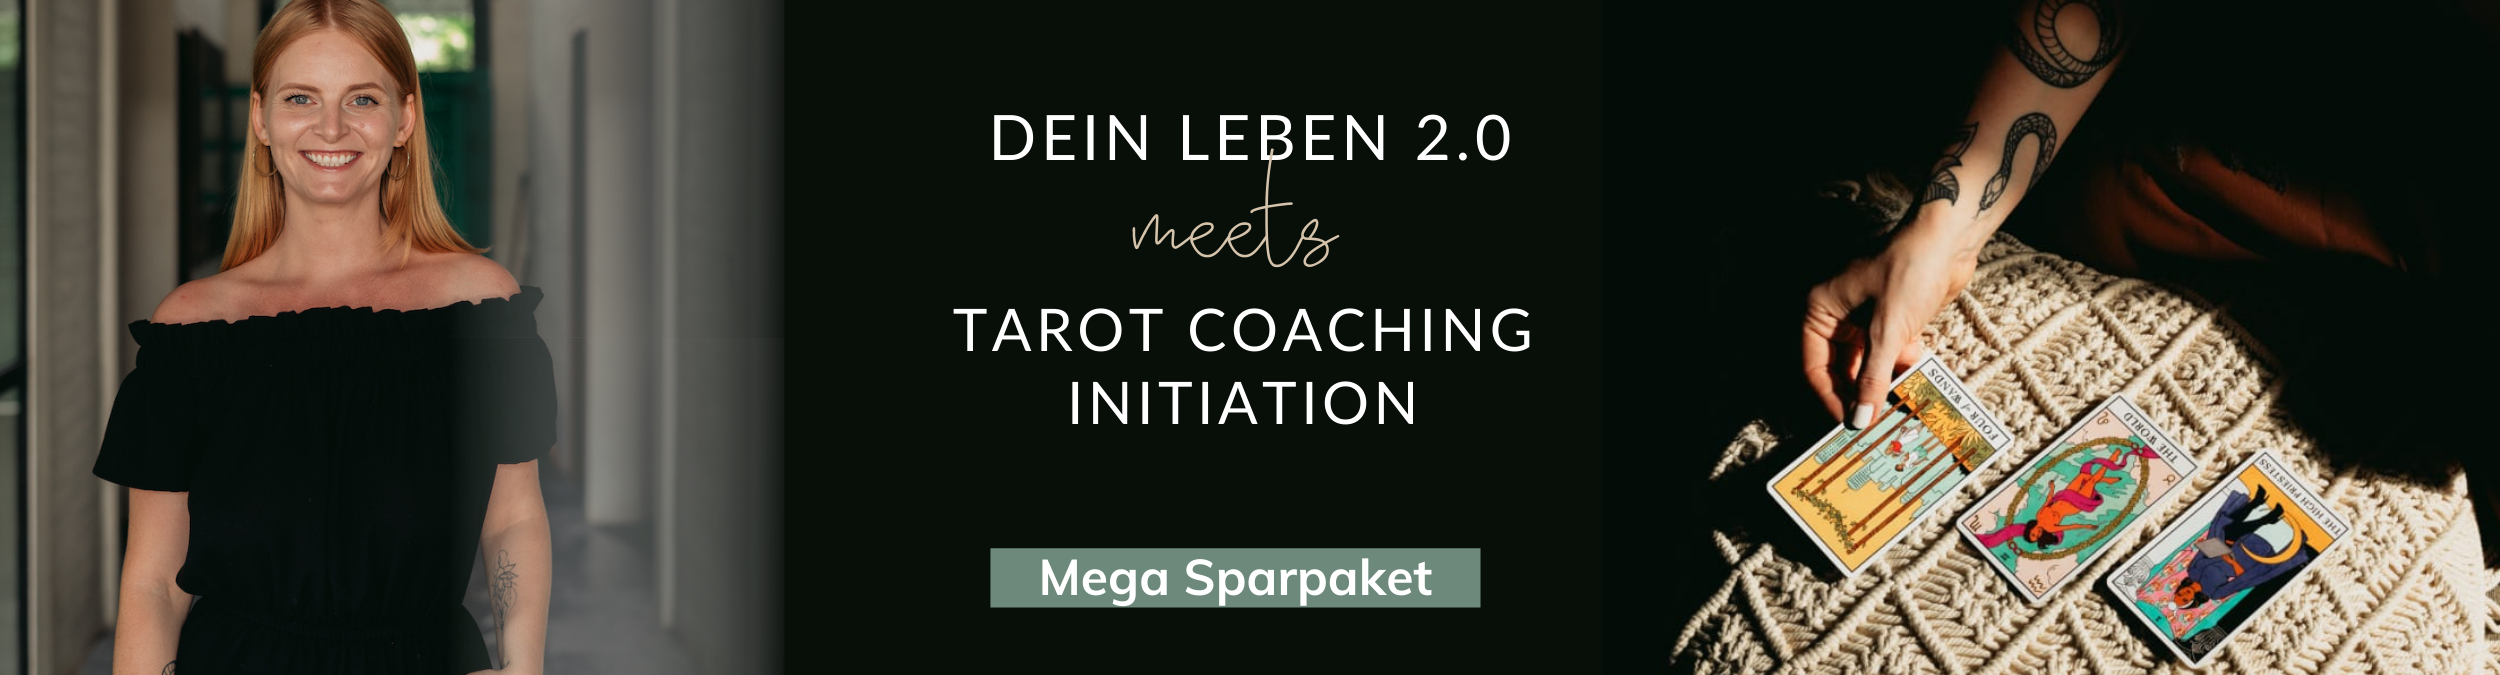 Coaching Angebot Andrea Morgenstern 2021